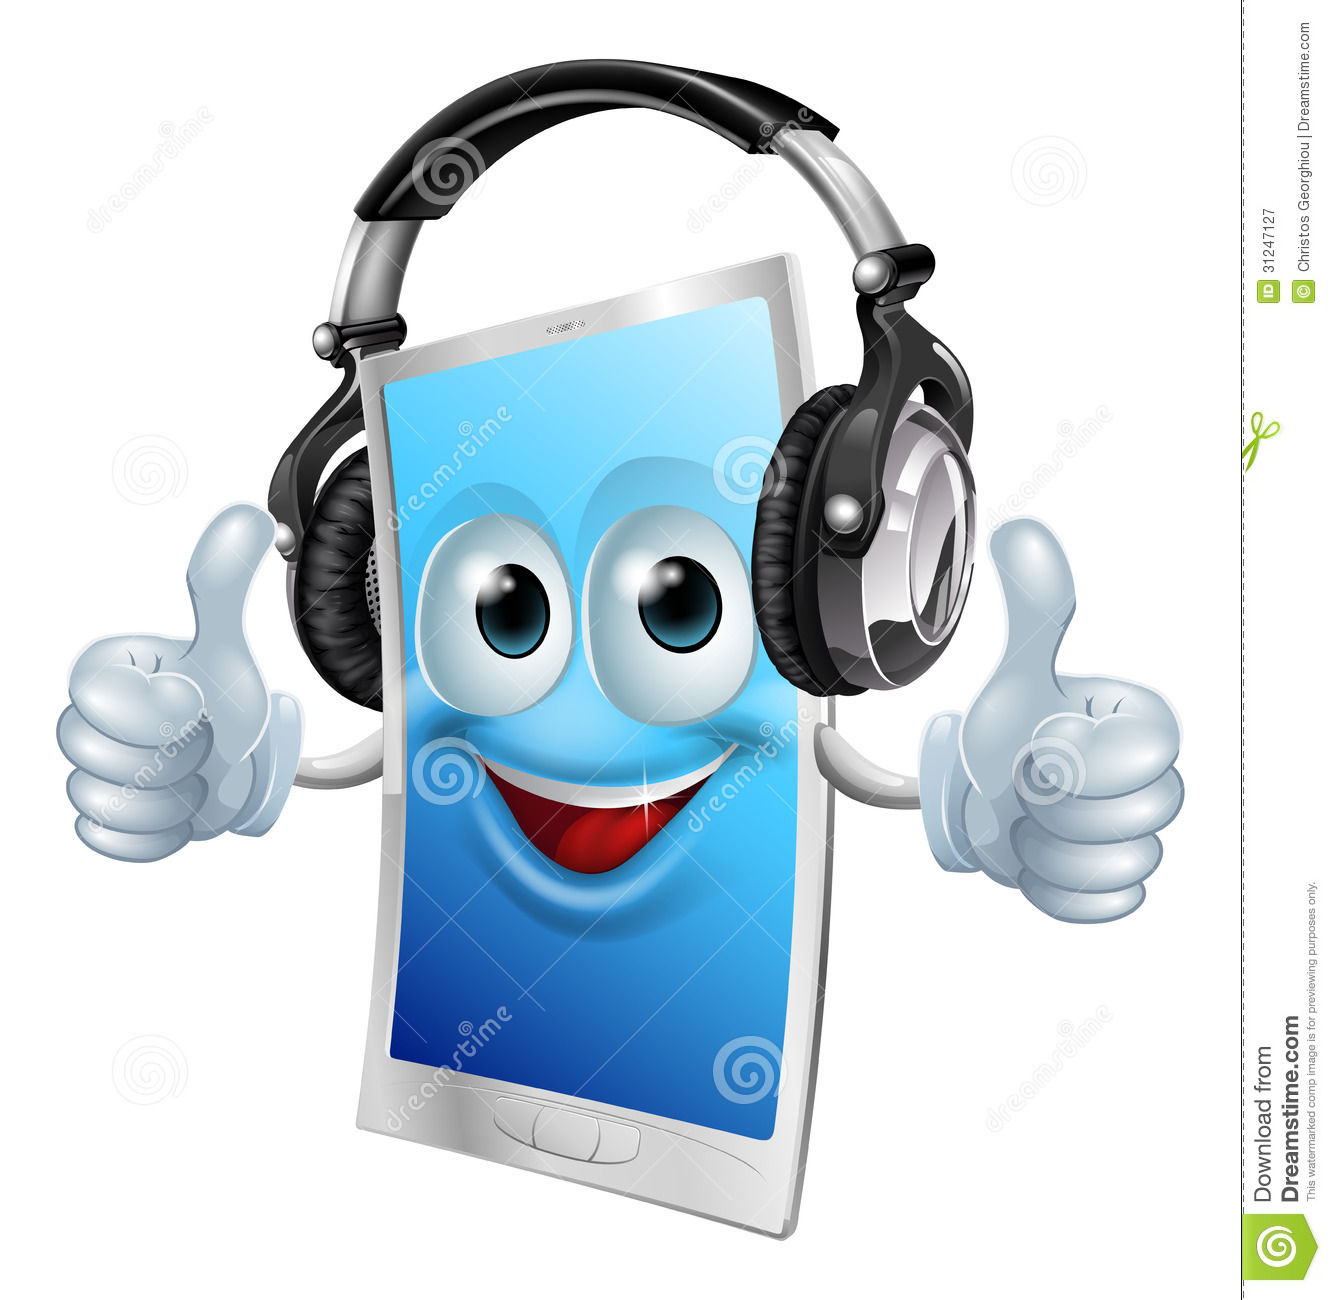 Headphones Phone Man Royalty Free Stock Photography - Image: 31247127: www.dreamstime.com/royalty-free-stock-photography-headphones-phone...